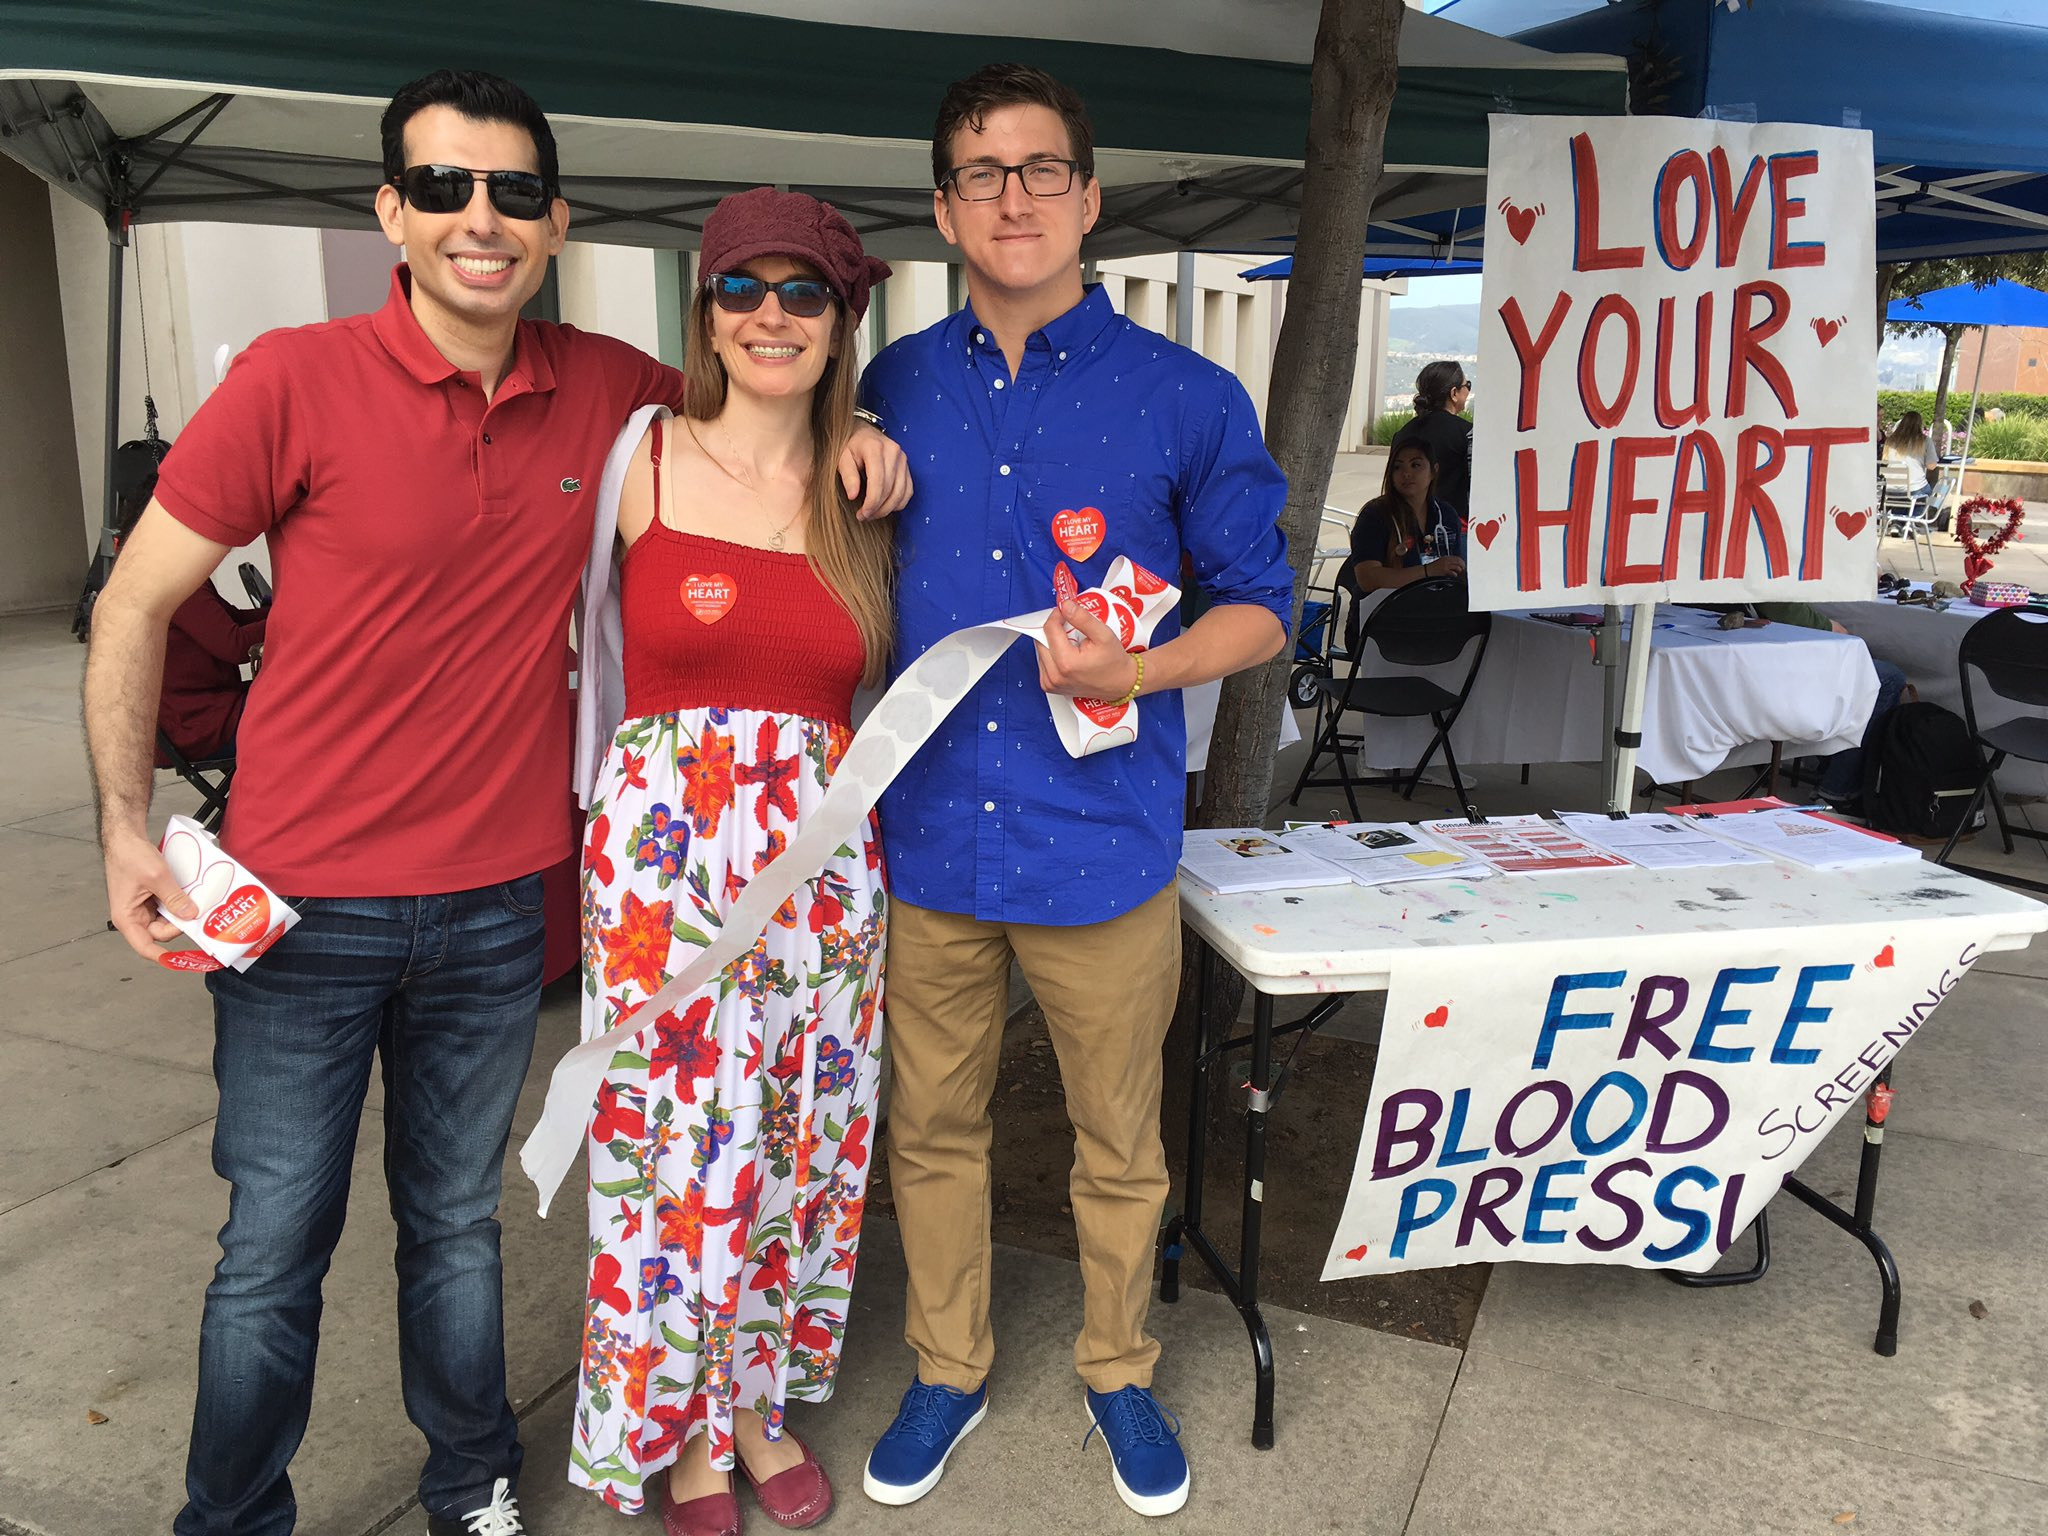 Thx to the students at CSUSM supporting healthy hearts with free BP screenings today! #LoveYourHeart @csusmnews https://t.co/dtG57QywwI